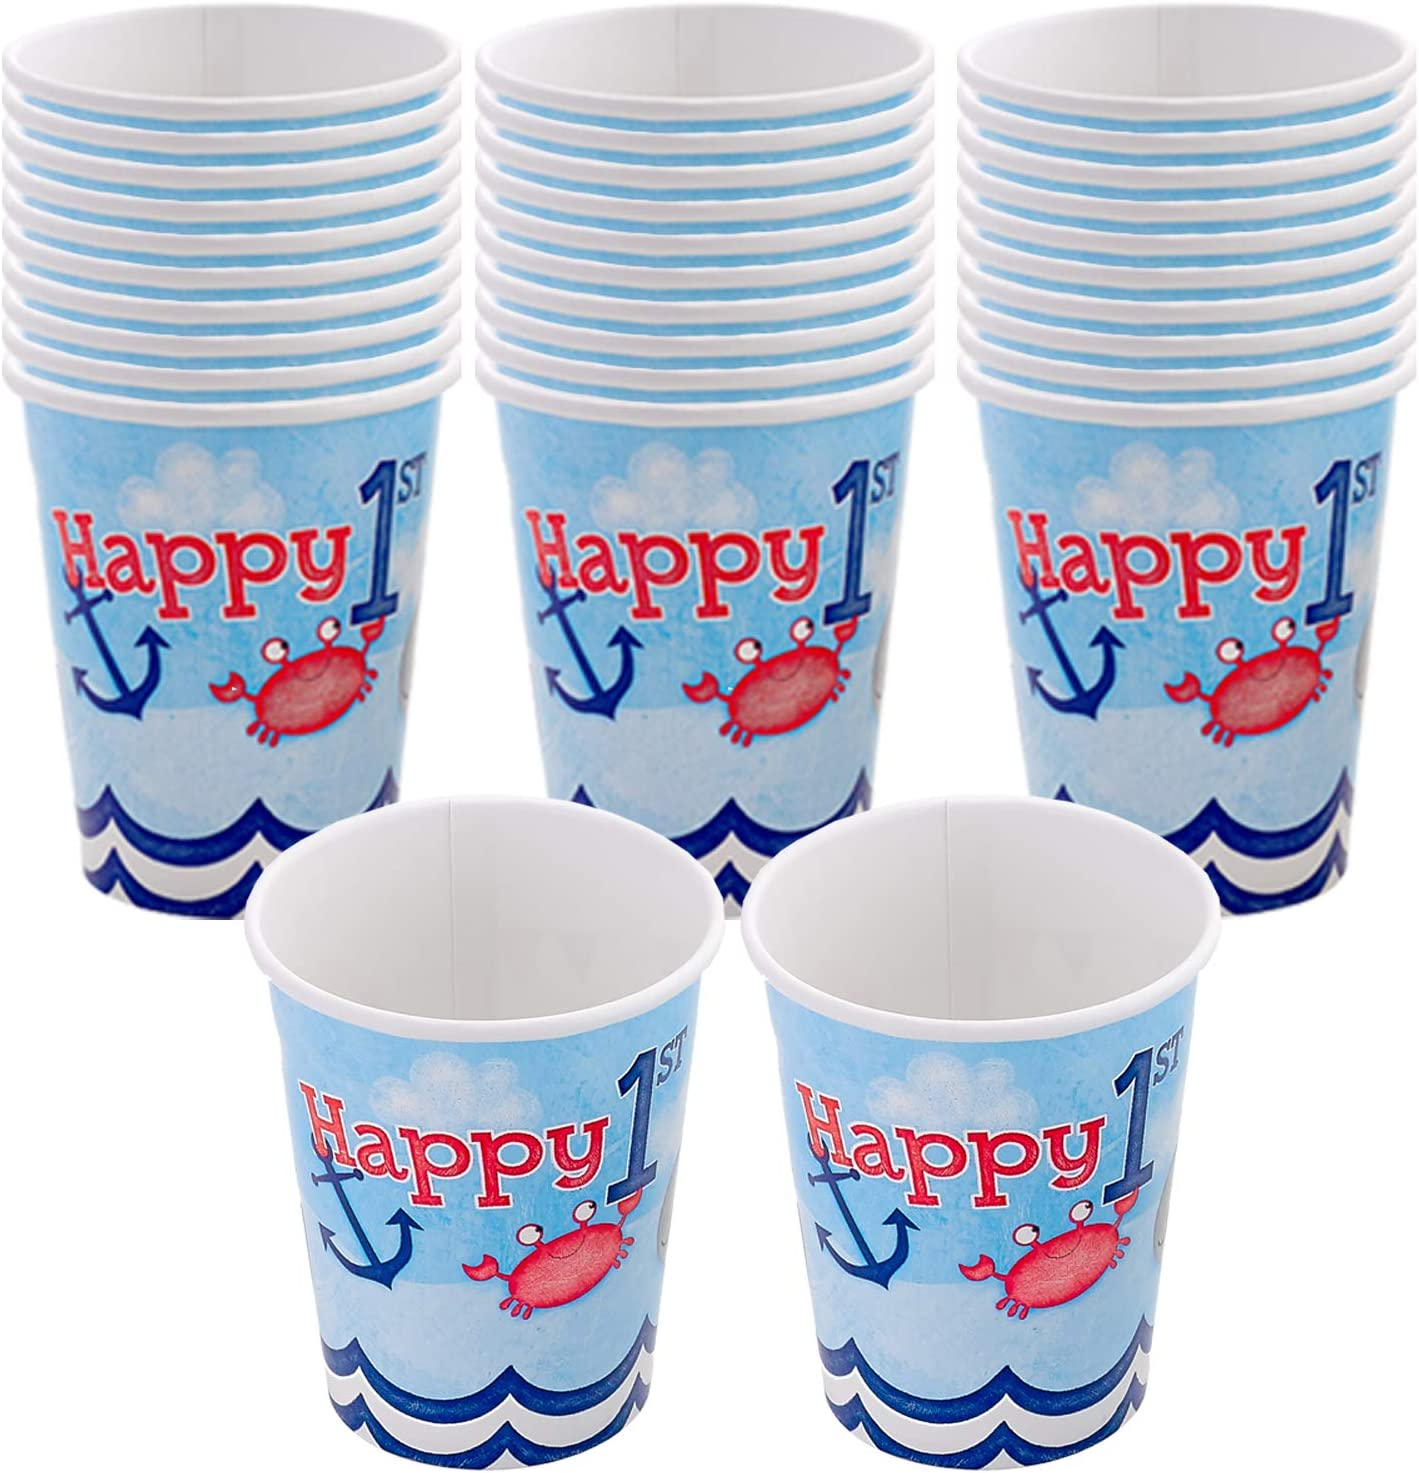 Kicko First Birthday Paper Cups, Nautical Themed, Blue - 32 Pack - 9 Ounces - Disposable Drinking Glasses - Dinner Accessories for Party Favors, Holidays, Weddings, Office, Outdoor Activities and More